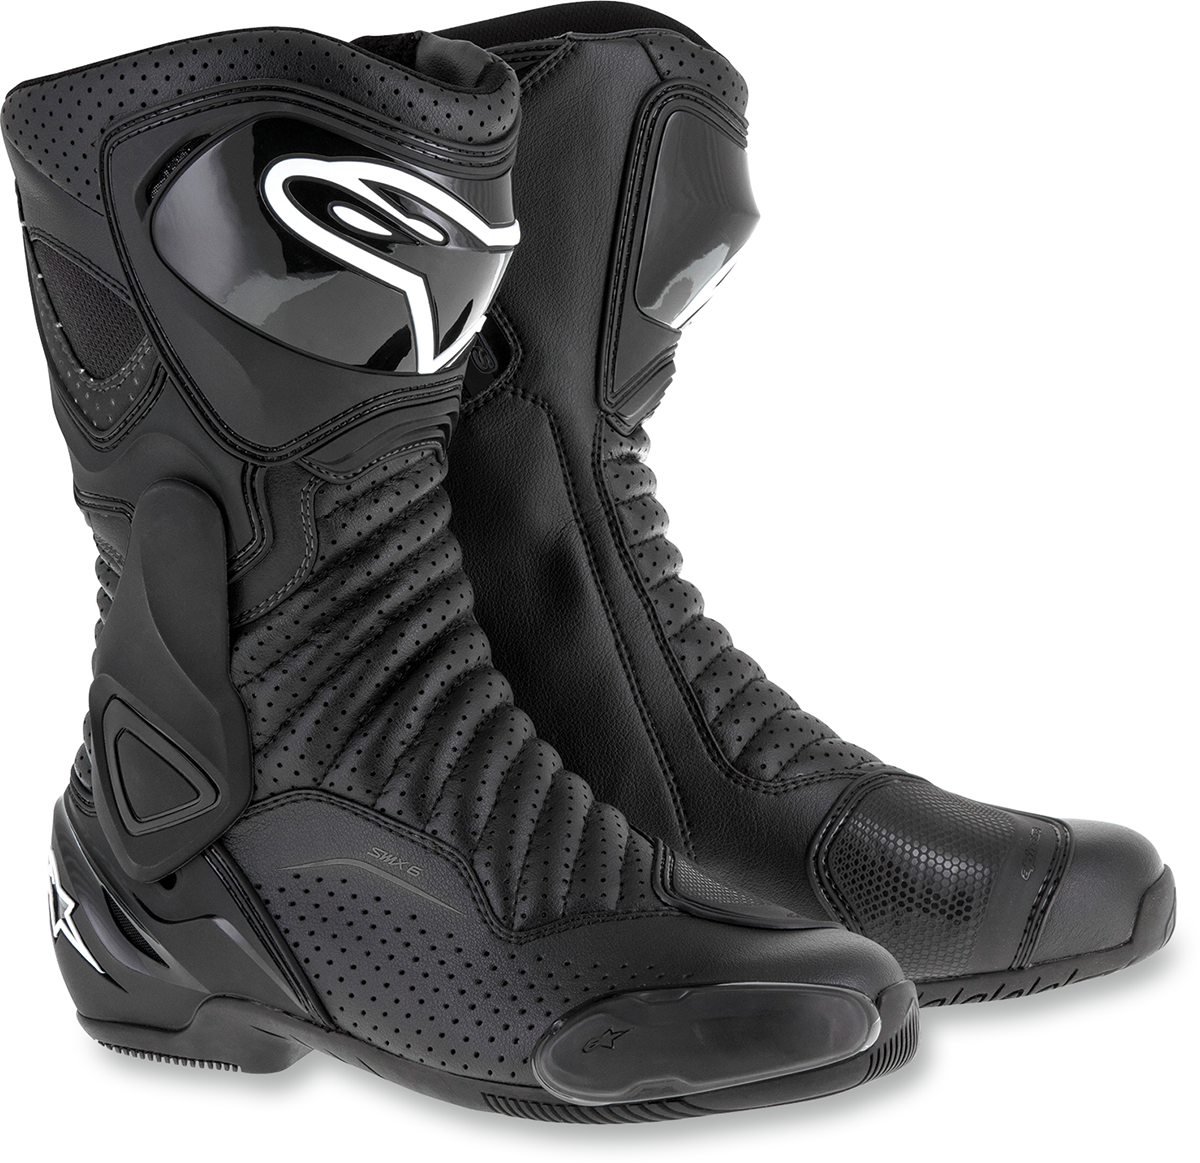 Mens Alpinestars Black SMX-6V2 Textile Motorcycle Riding Street Racing Boots